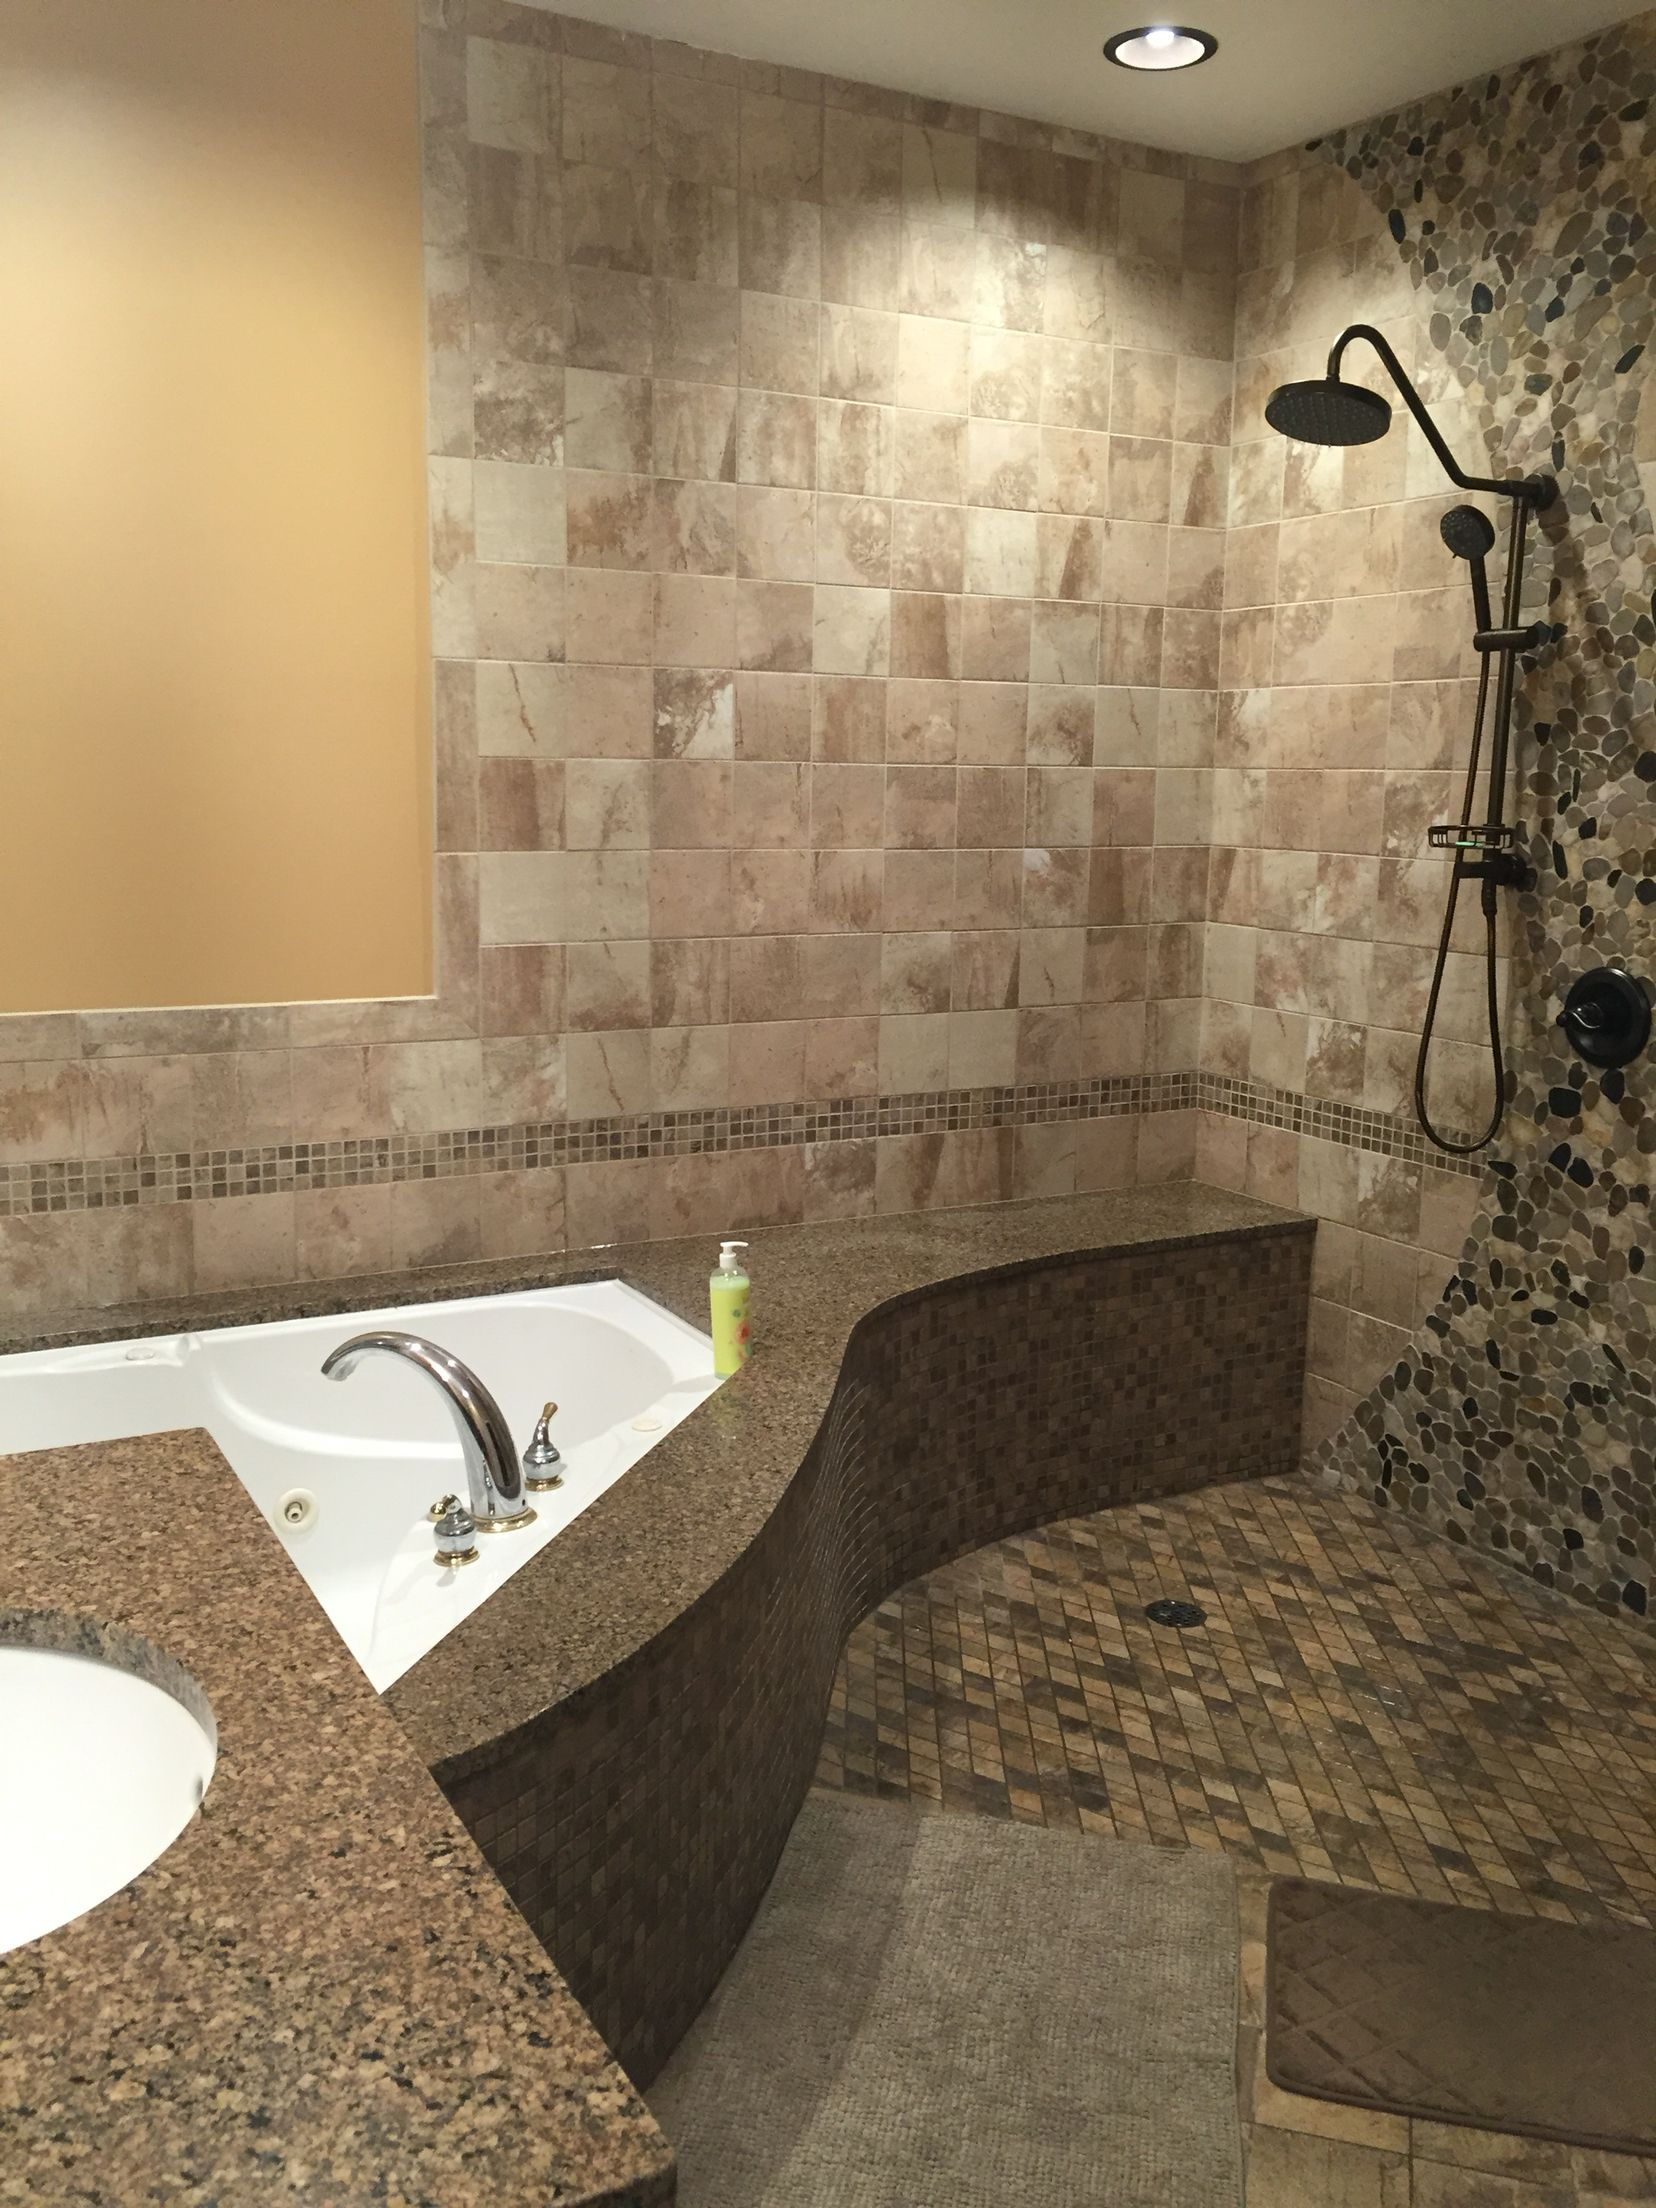 Spa Walk In Open Shower Jacuzzi Tub Remodel Oil Rubbed Bronze